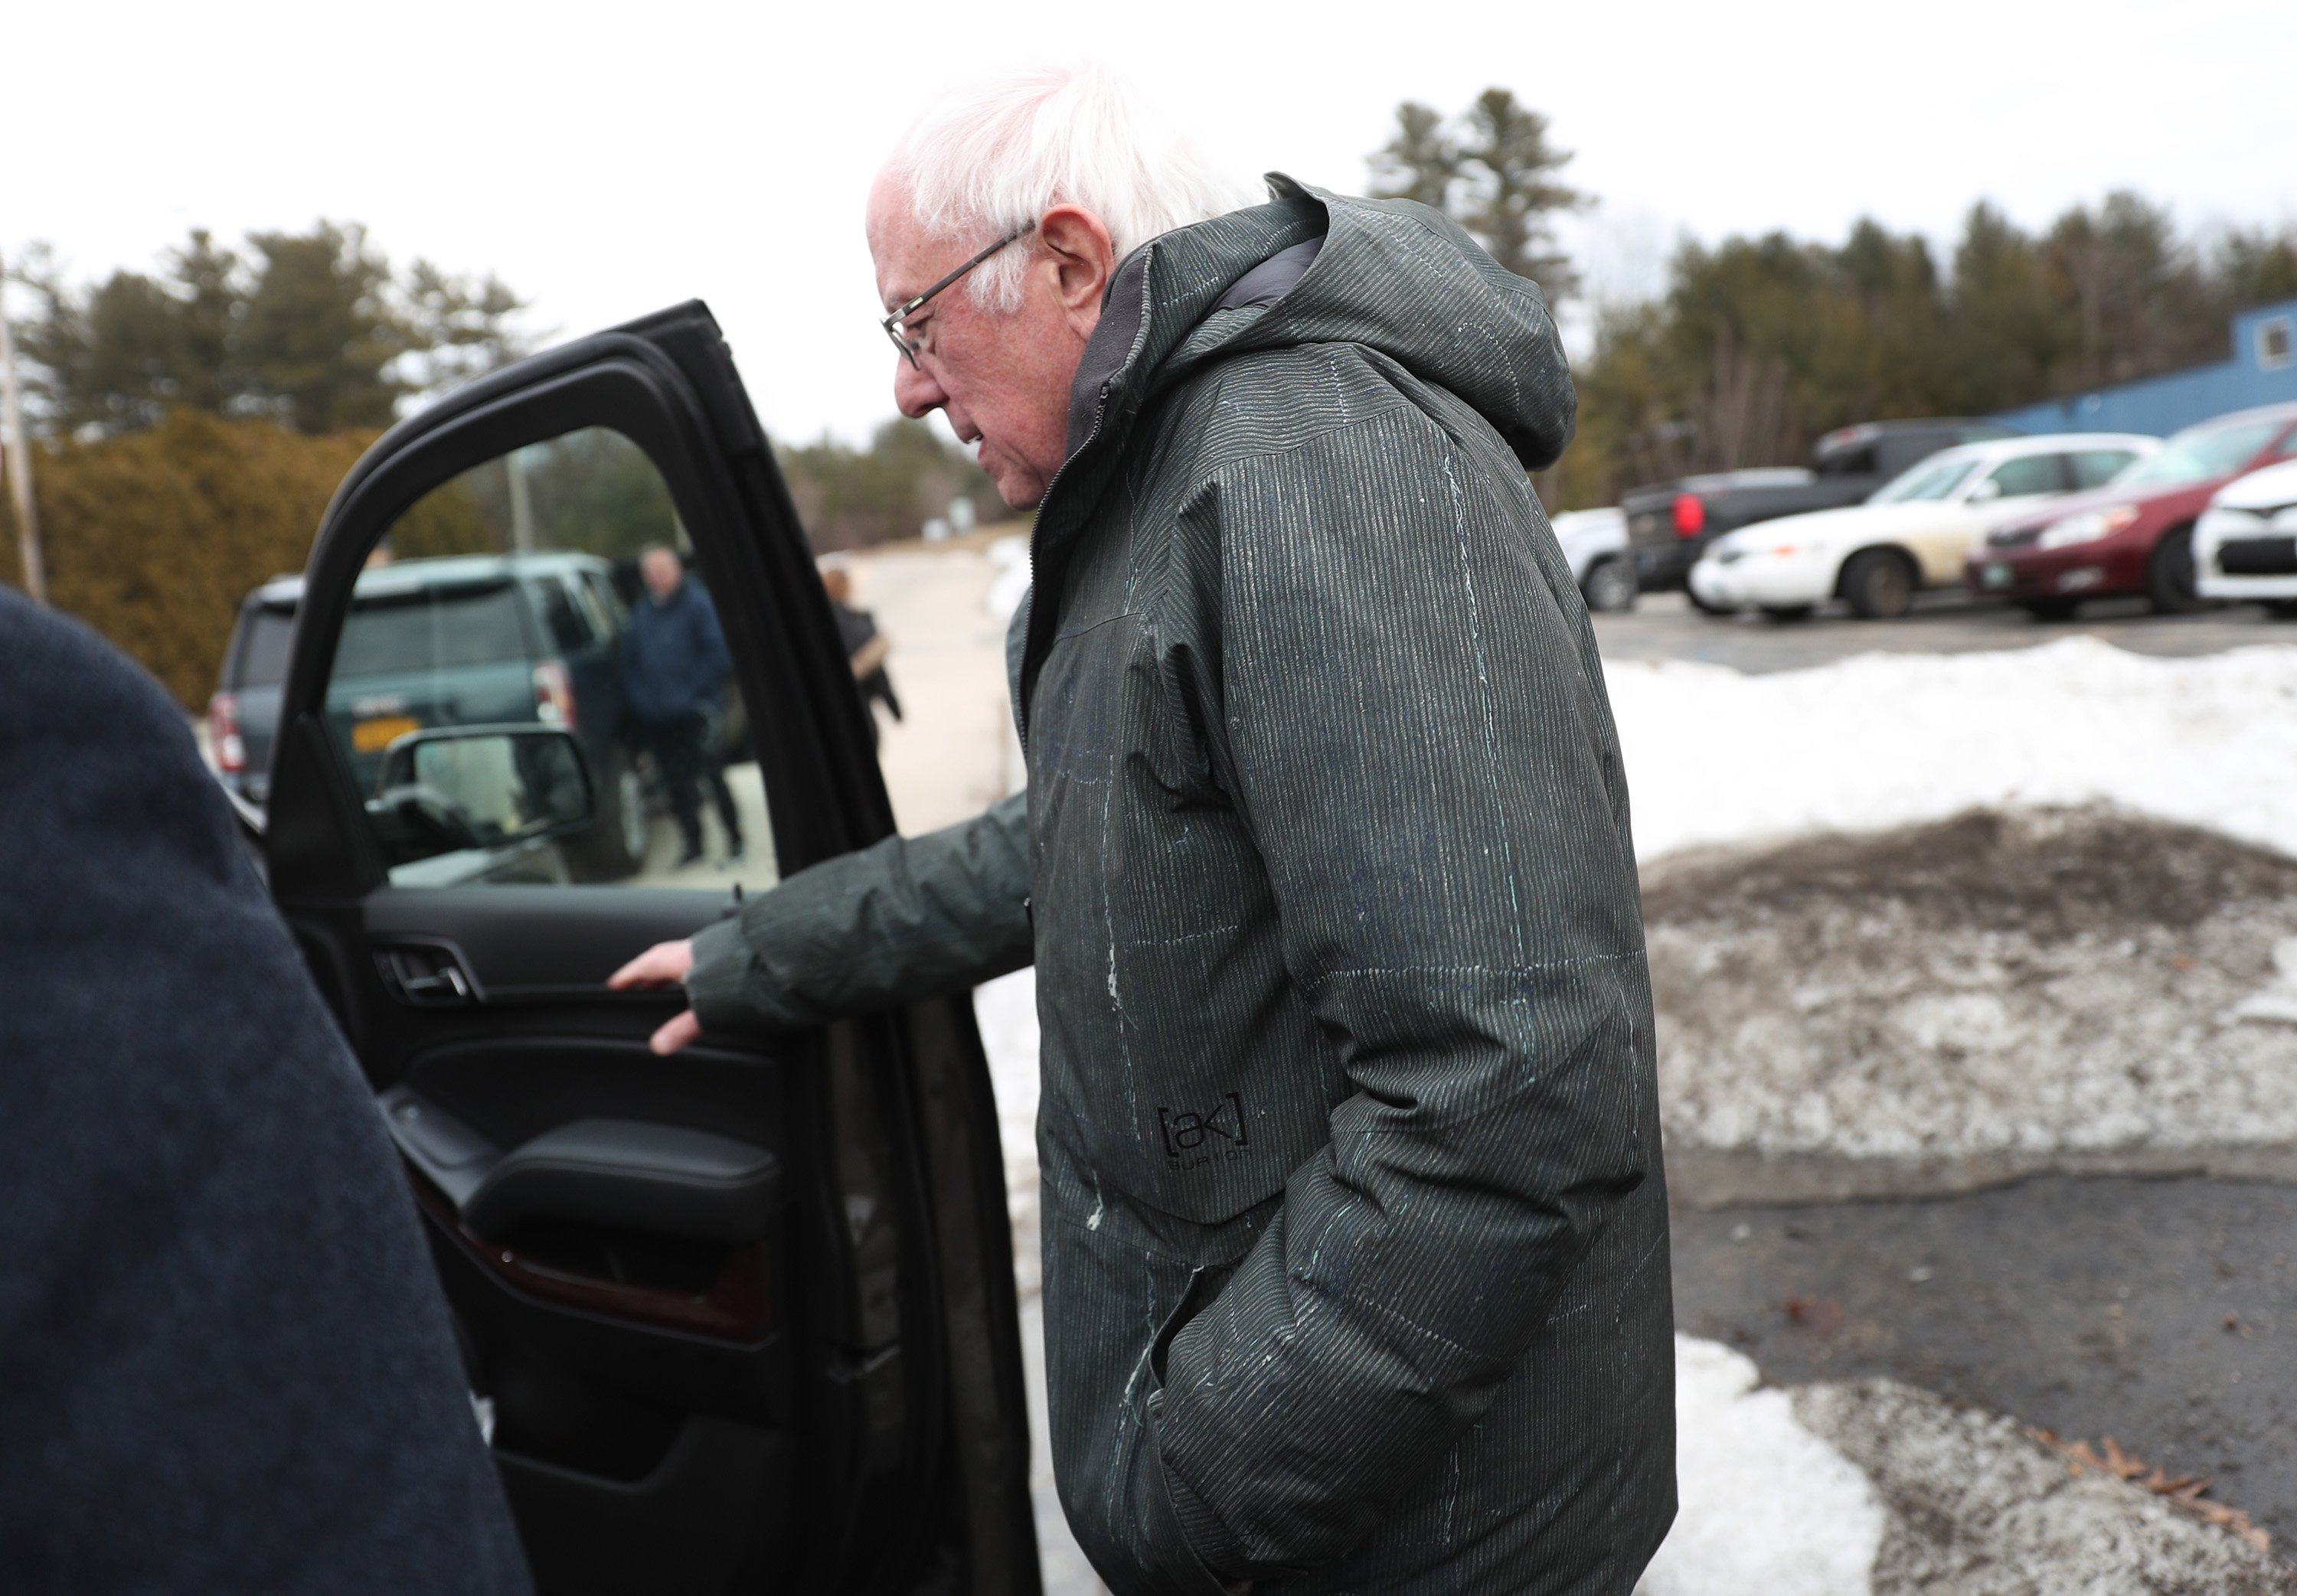 MANCHESTER, NEW HAMPSHIRE - FEBRUARY 04: Democratic presidential candidate Sen. Bernie Sanders (I-VT) walks to his vehicle after greeting people that turned out to meet him after he landed on February 04, 2020 in Manchester, New Hampshire. Mr. Sanders arrived in New Hampshire to campaign leading up to the primary on February 11 as he awaits the release of the results from the Iowa caucus. (Photo by Joe Raedle/Getty Images)